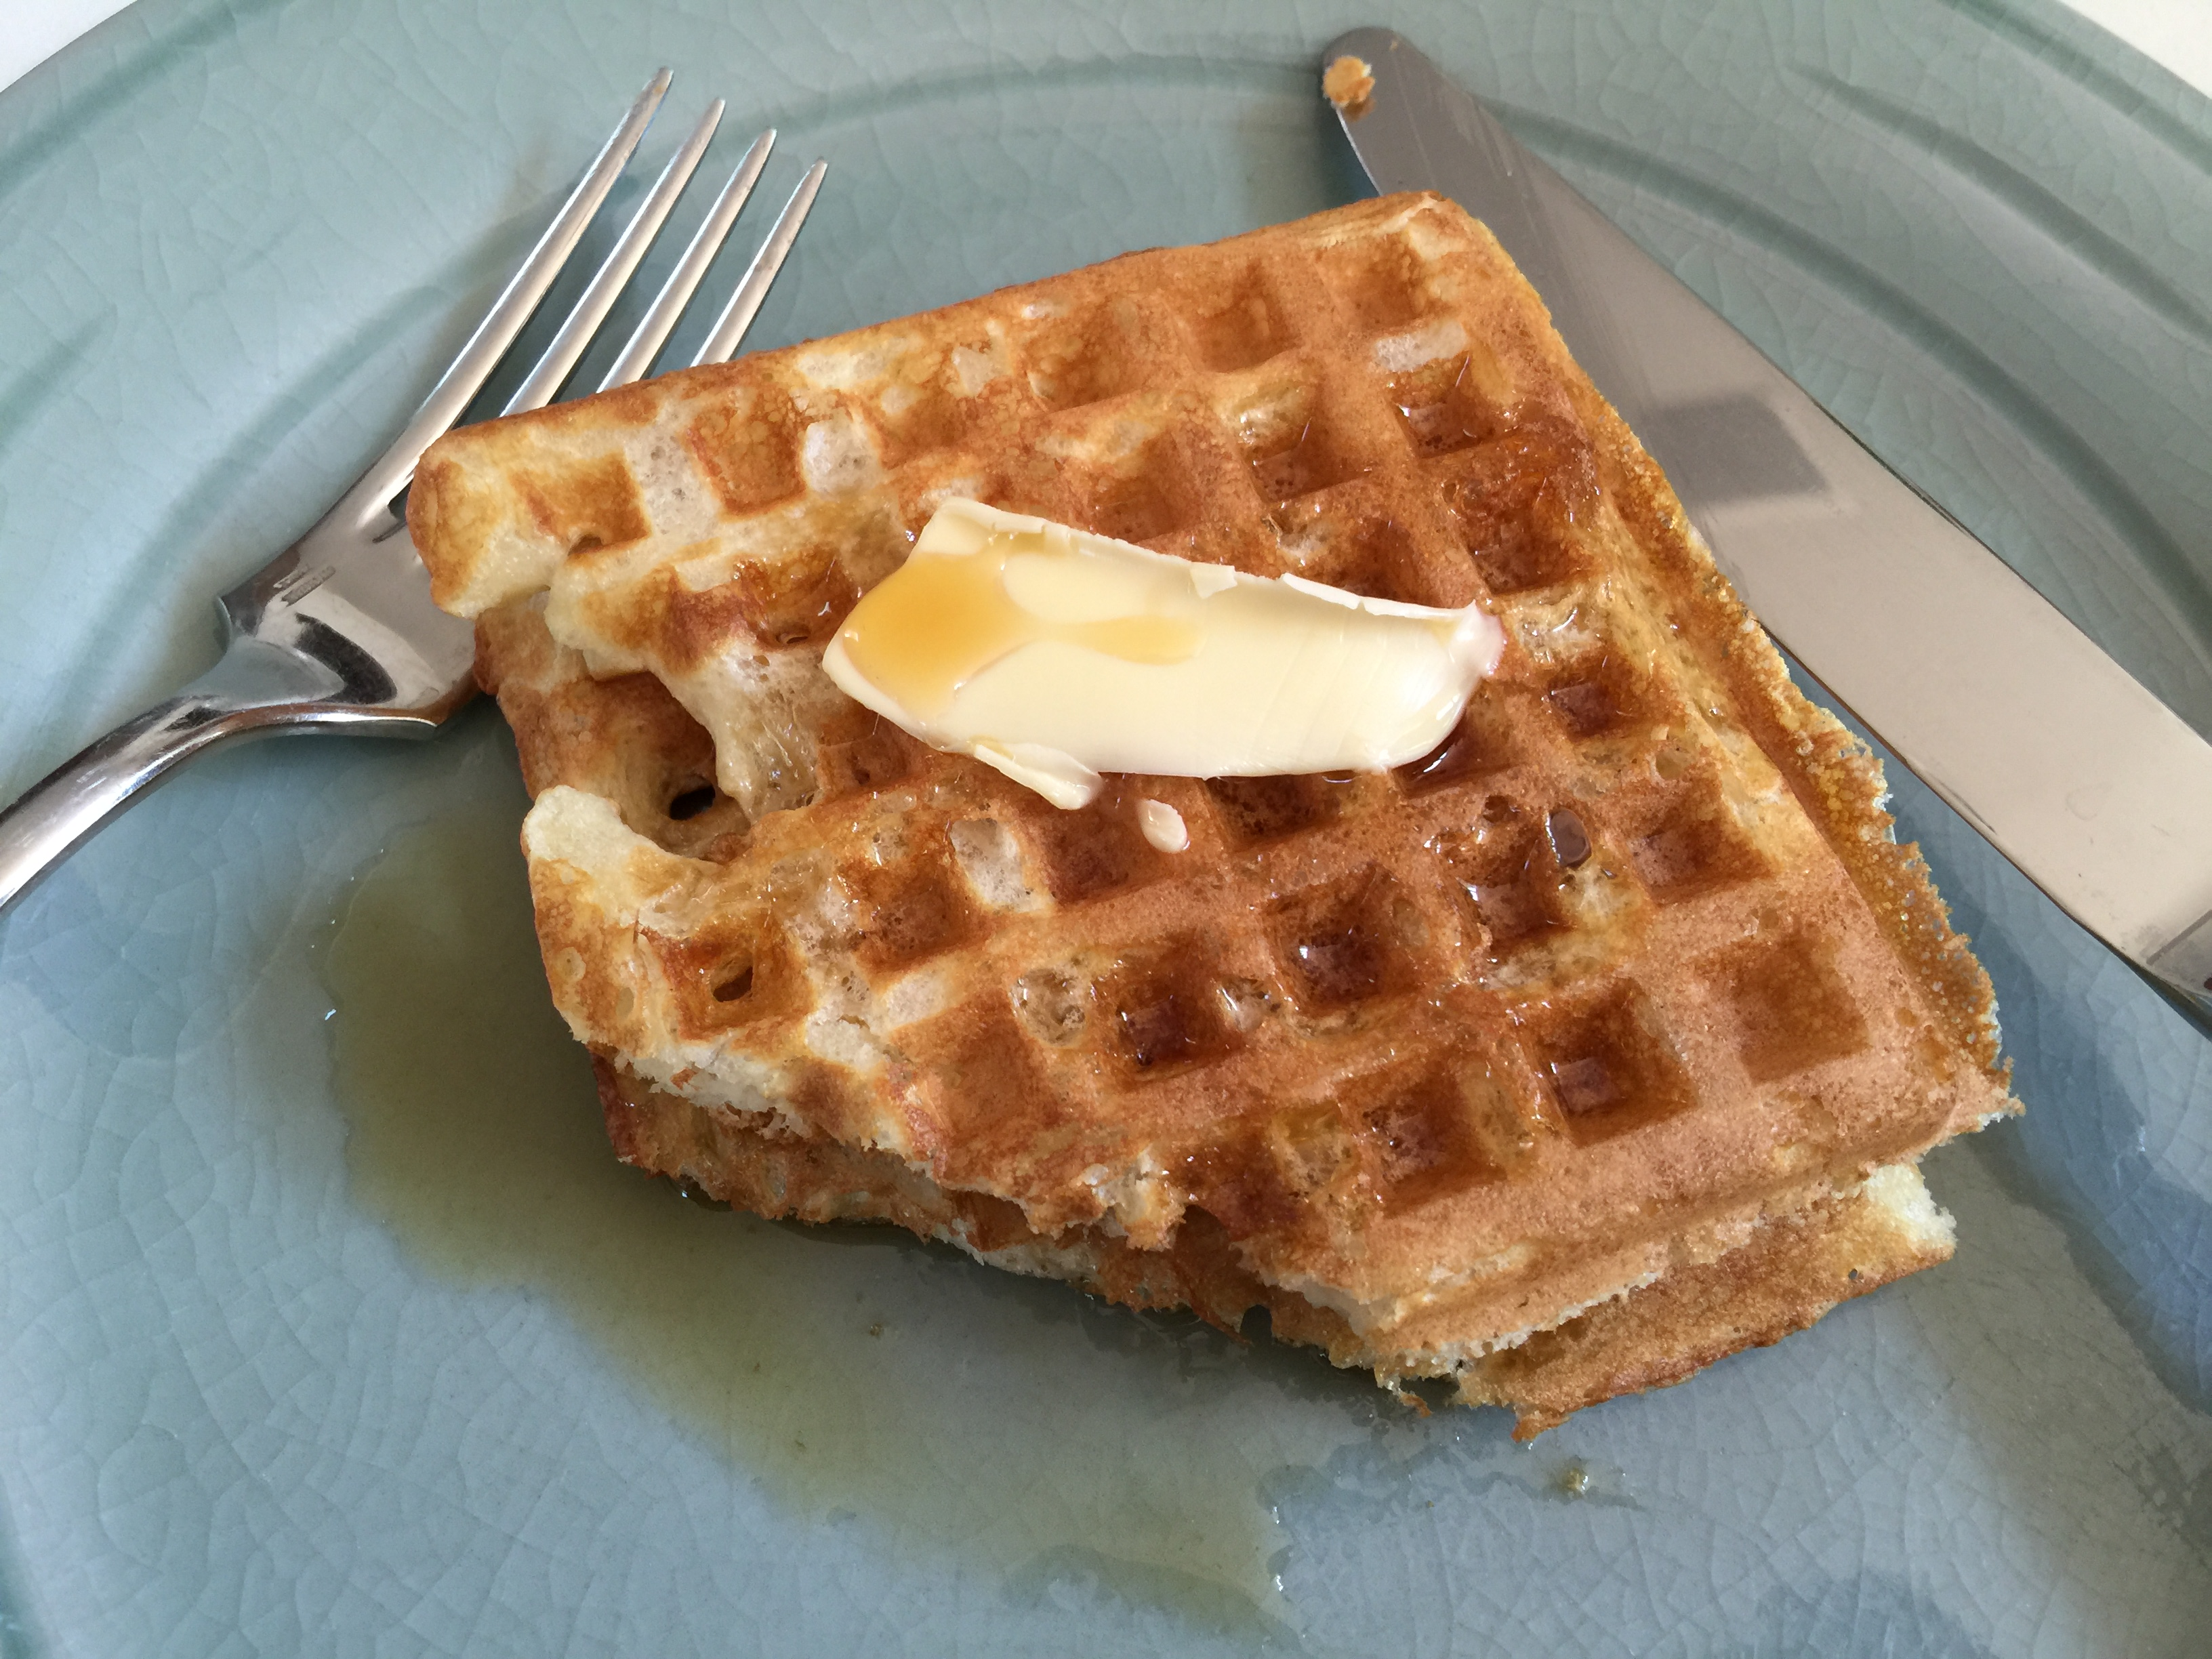 Buttermilk Waffles on Plate - CookingCoOp.com